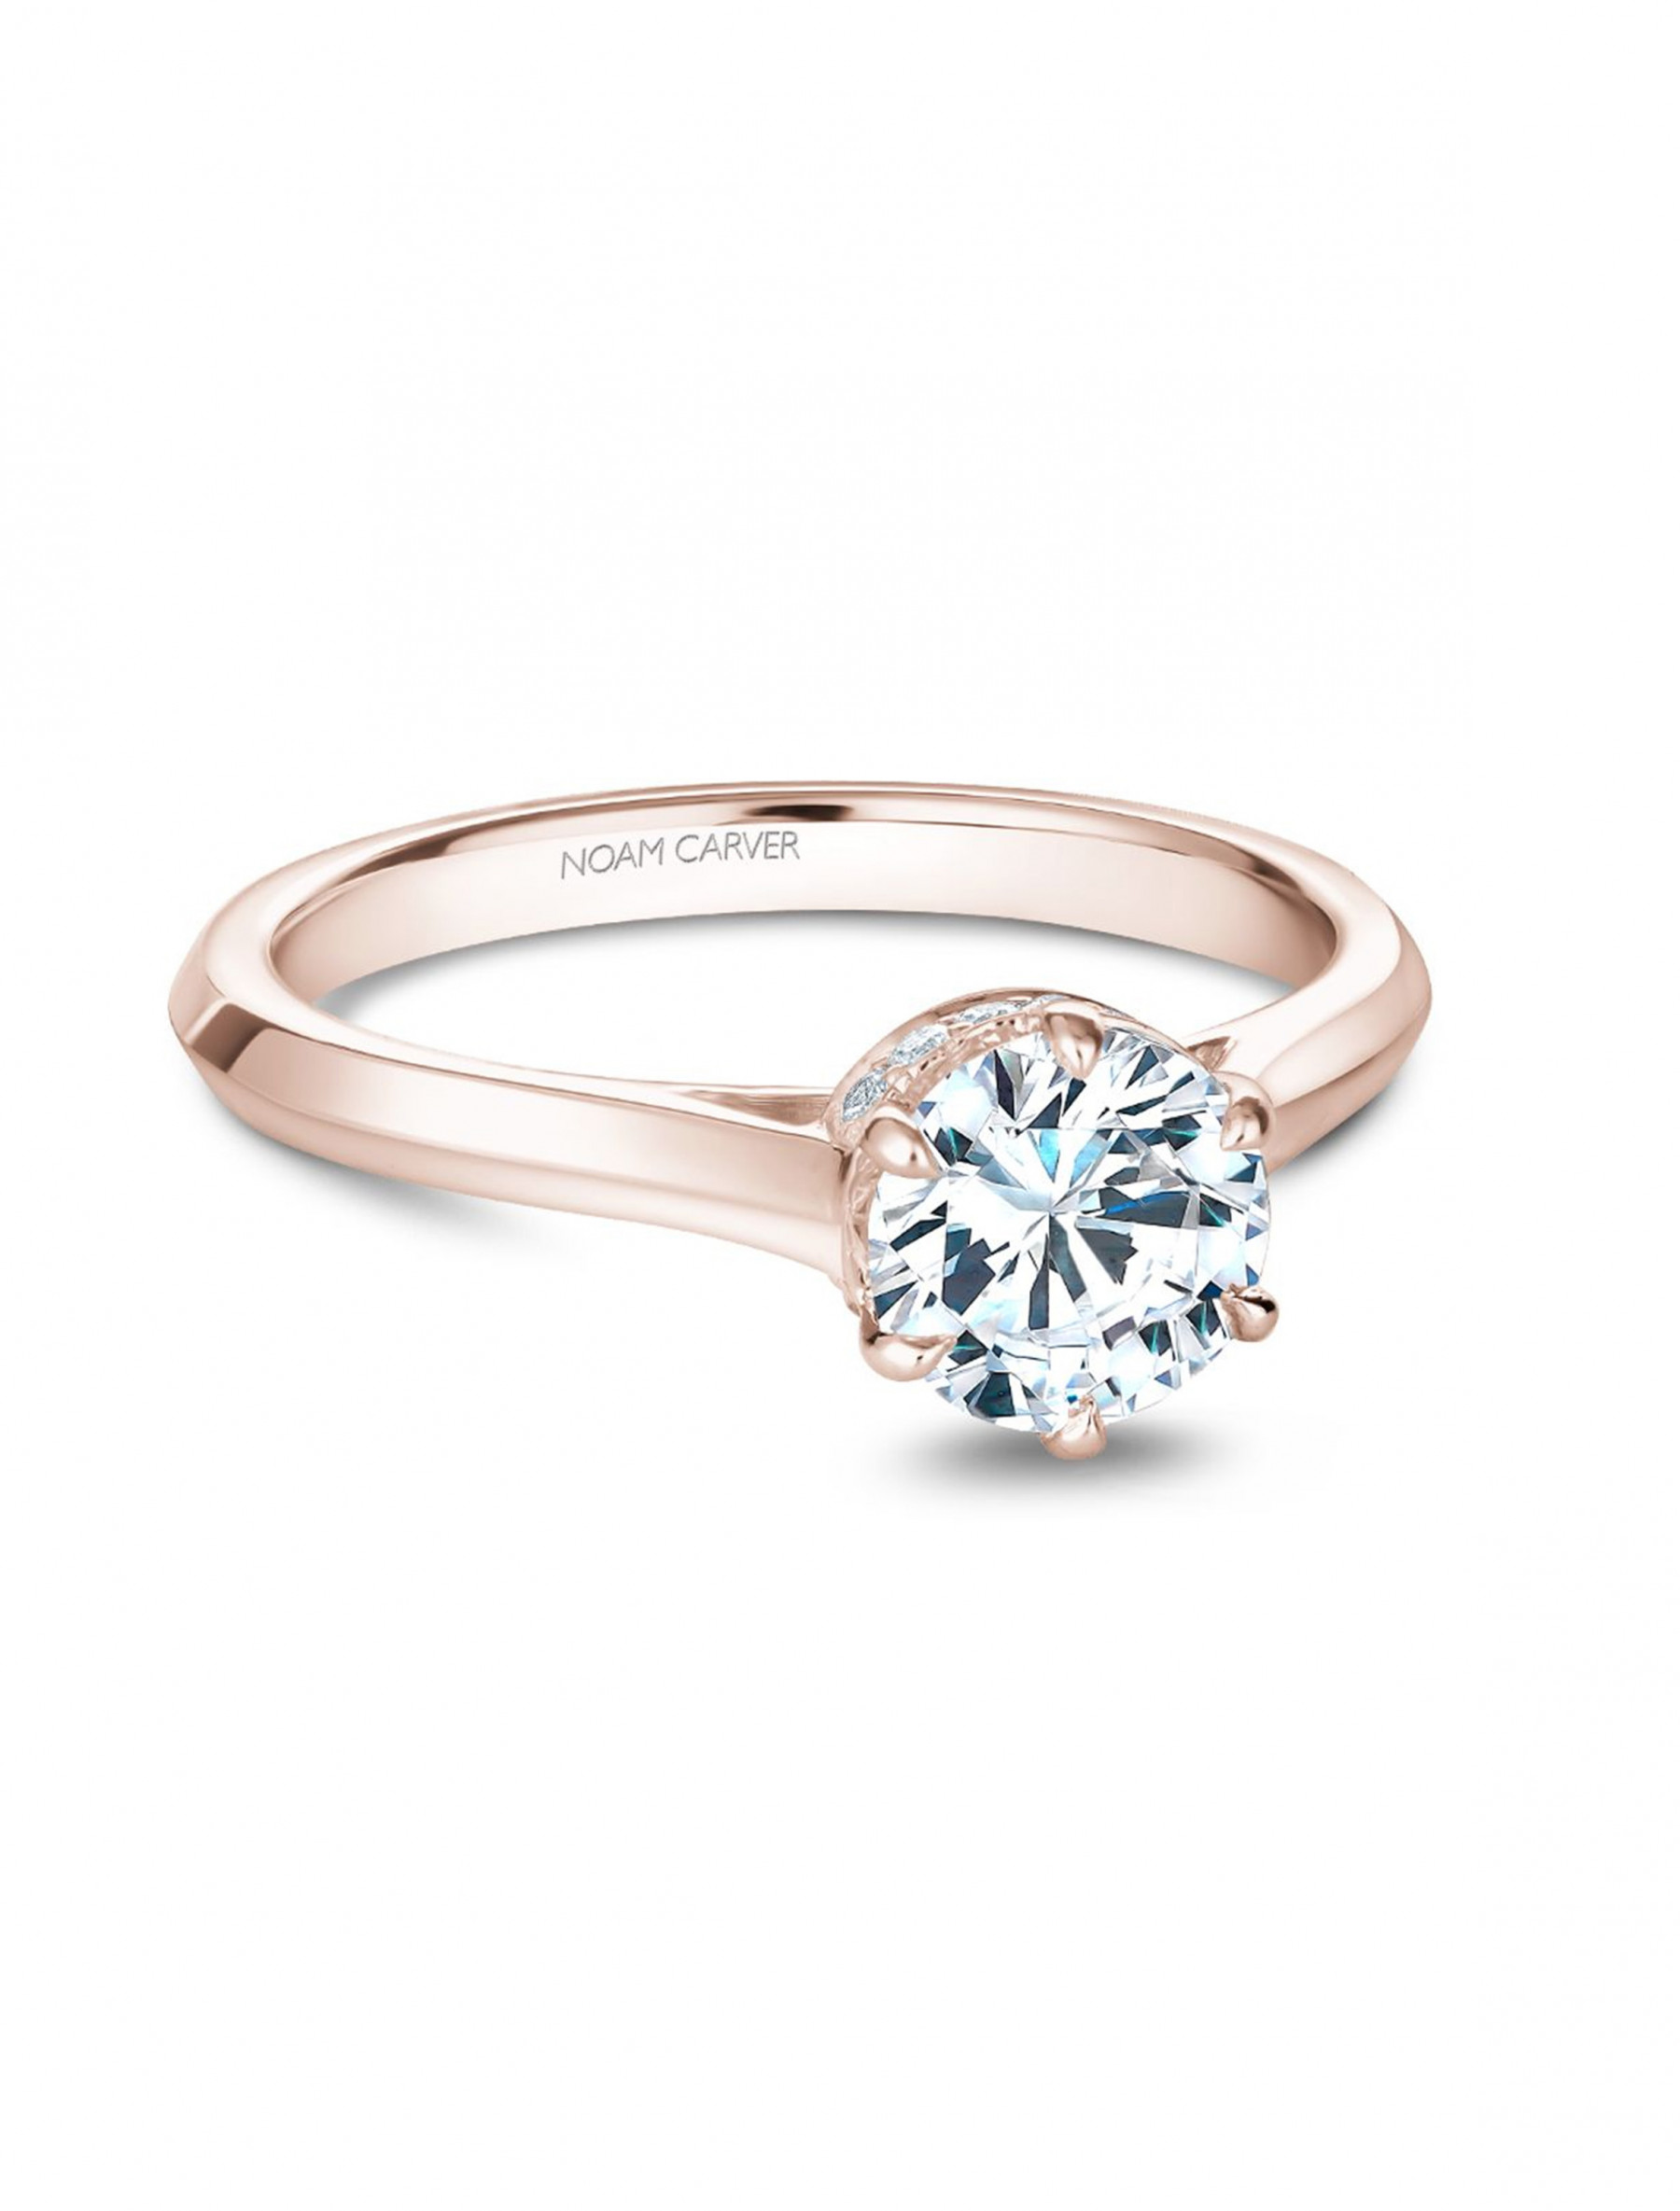 Noam Carver 14K Rose Gold Round Solitaire Pave Diamond Crown Engagement Ring Setting main view